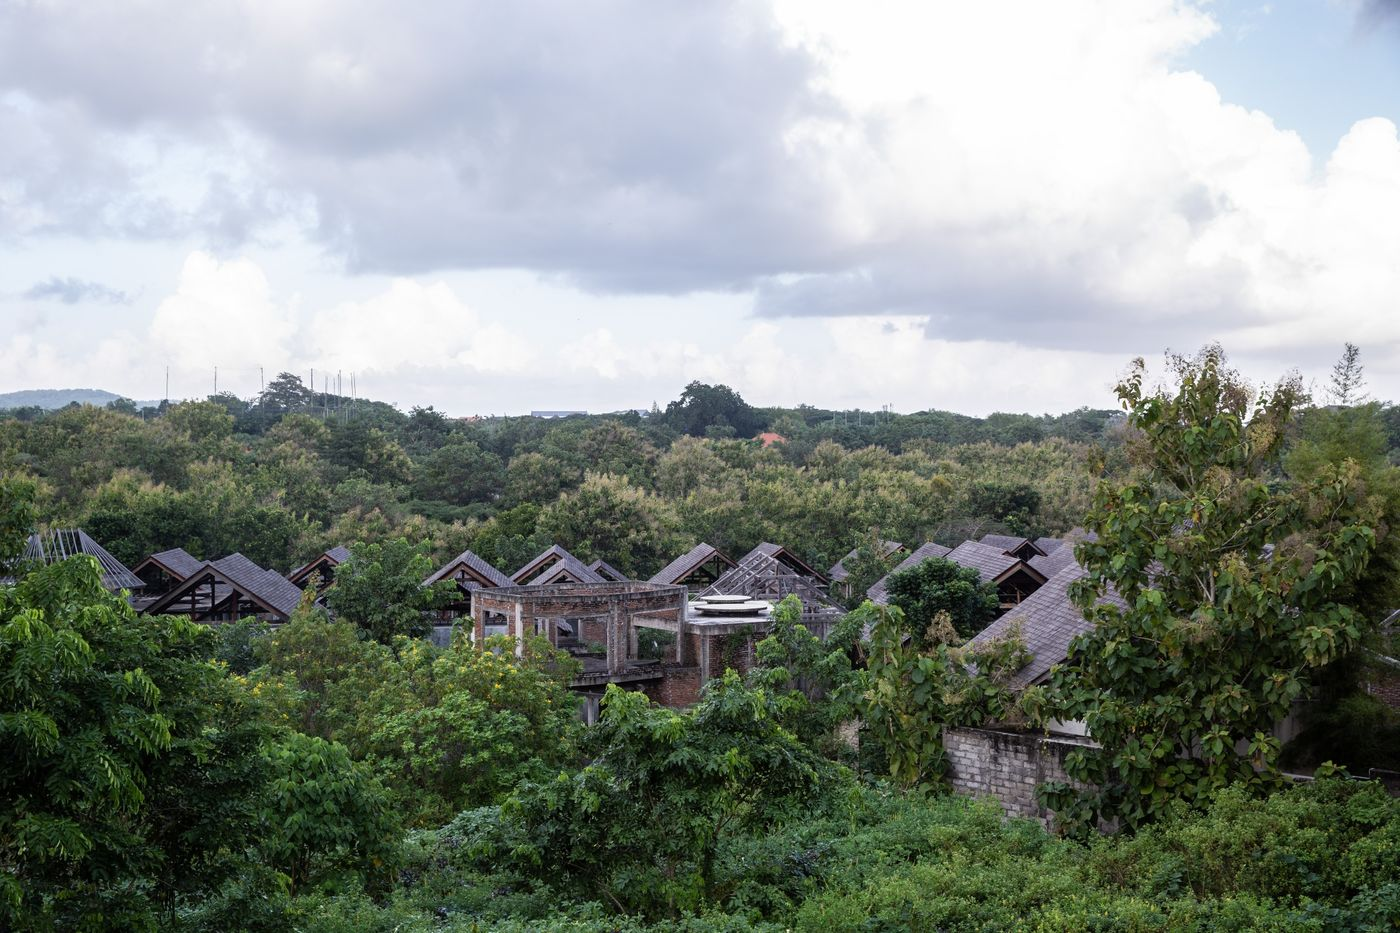 relates to Bali Hotels Go on Sale for Cheap With Virus Hammering Tourism